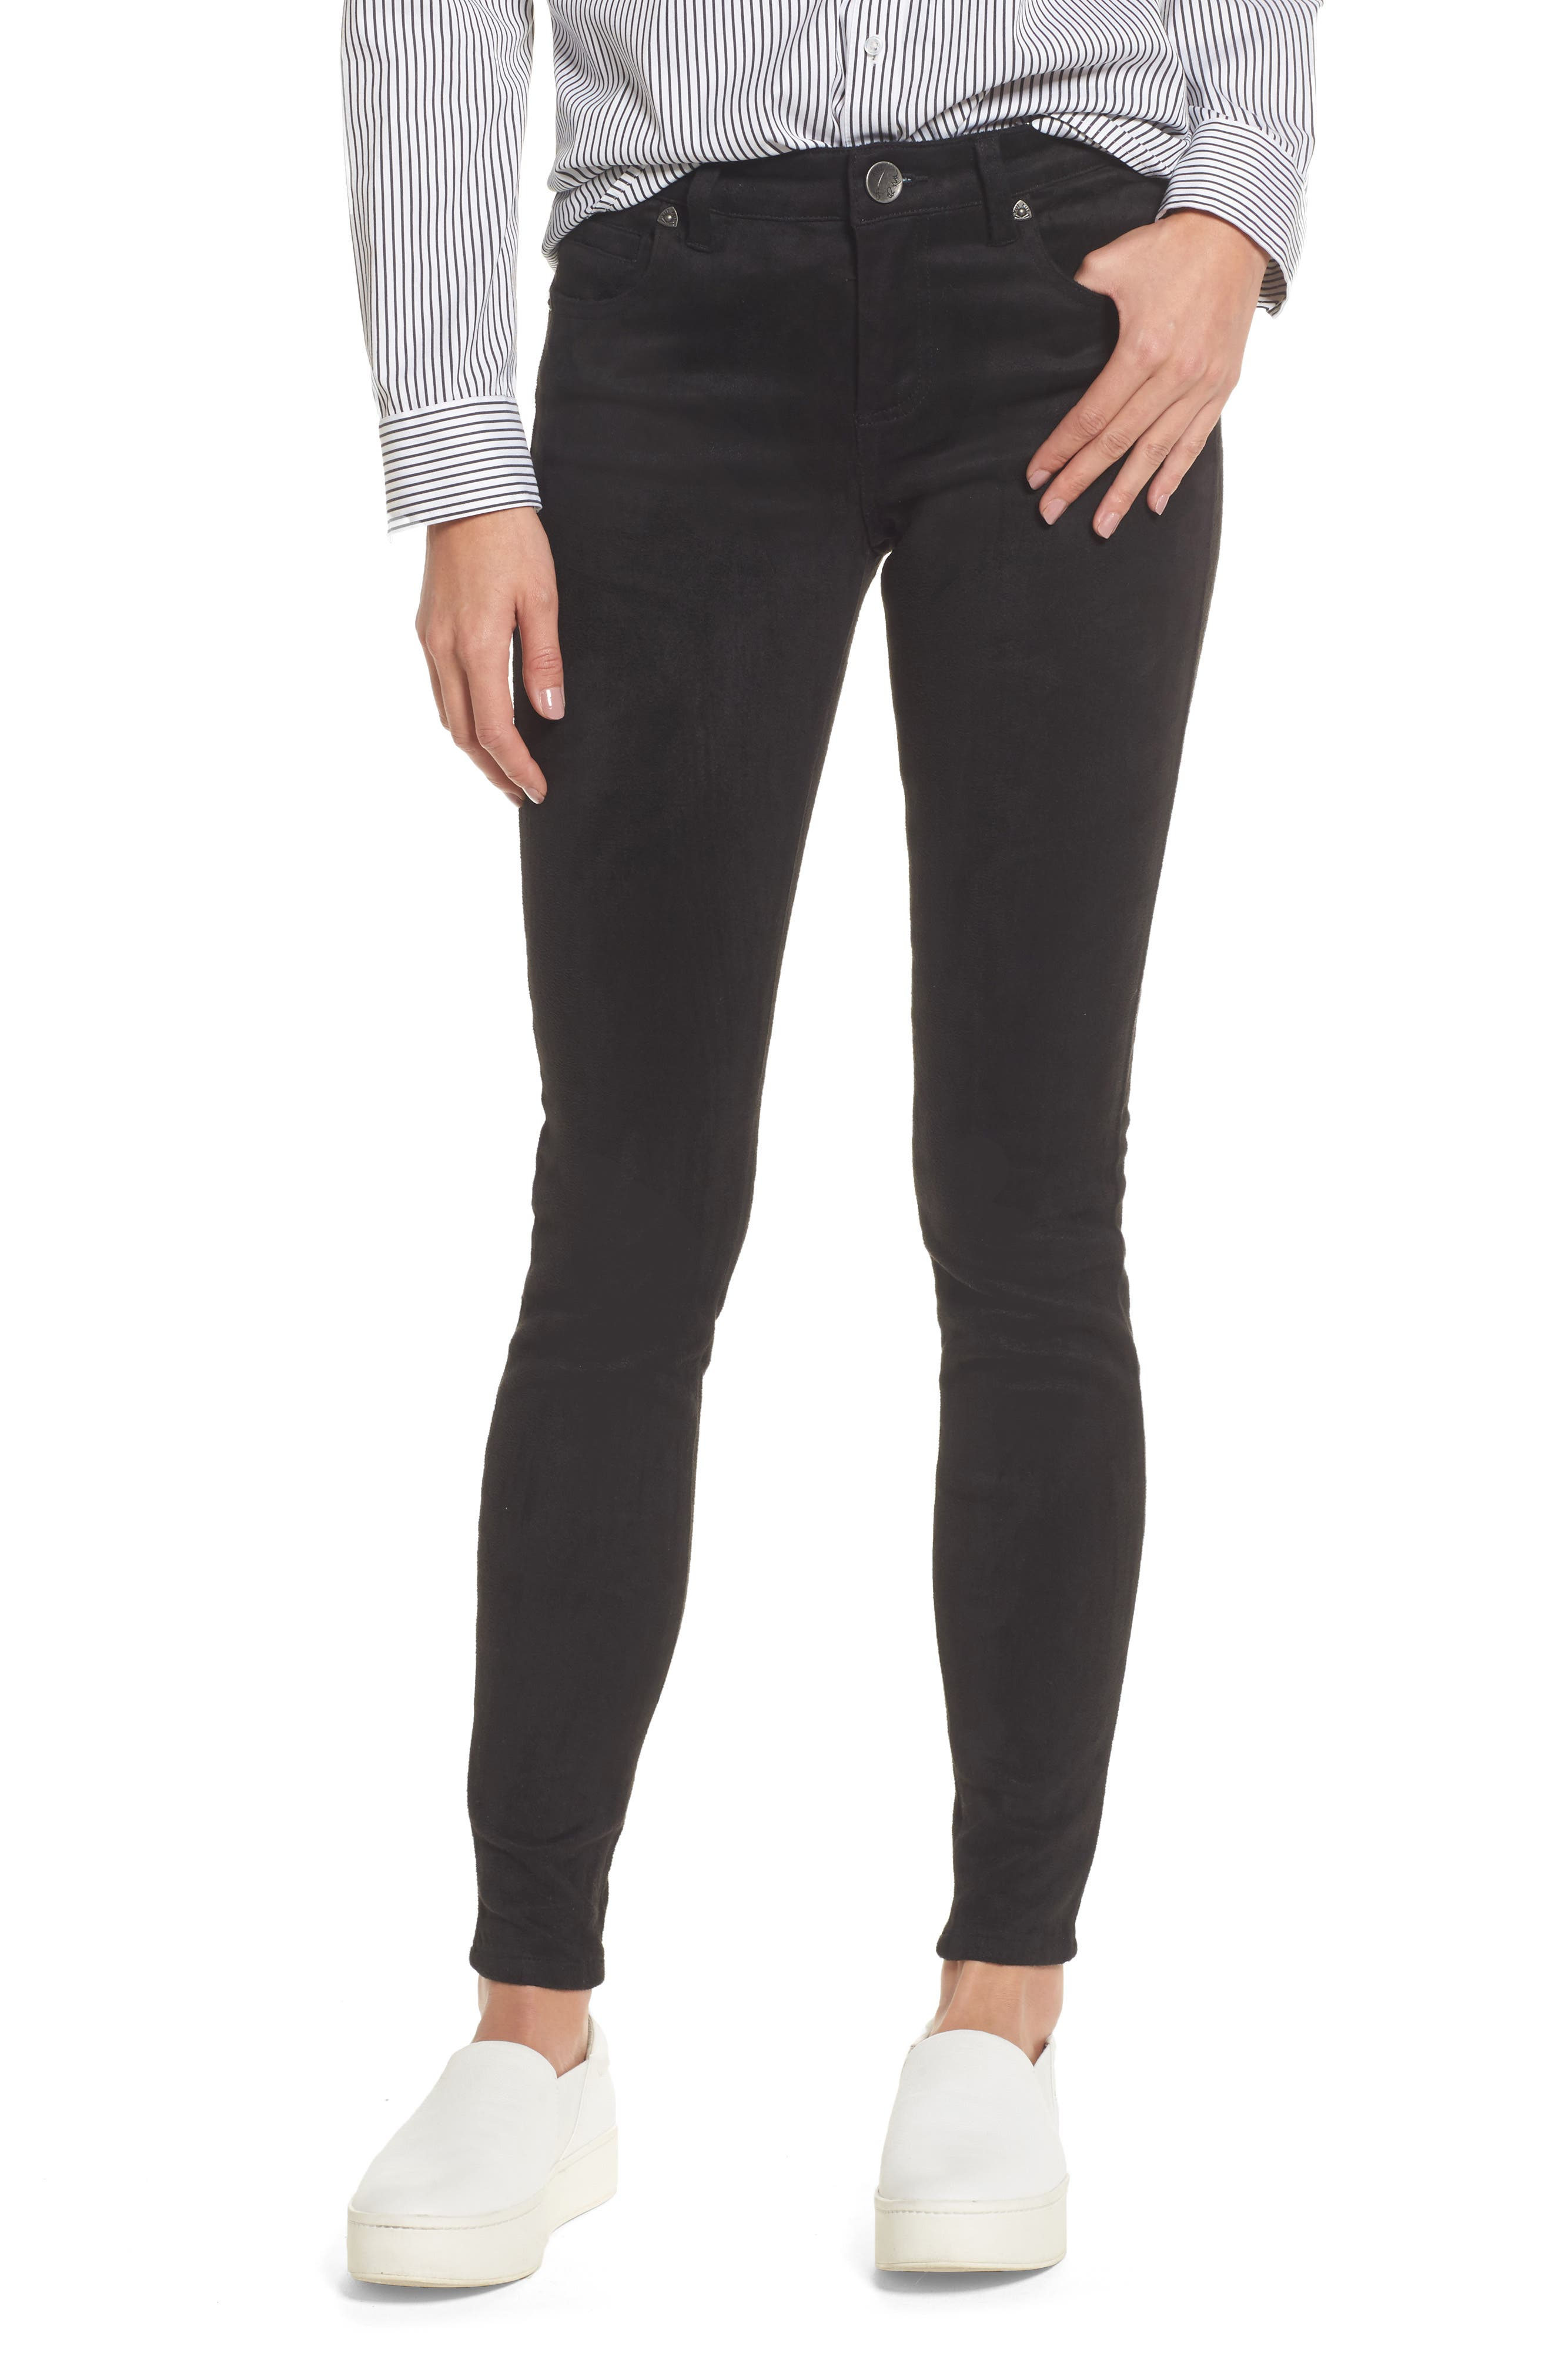 Main Image - KUT from the Kloth Mia Faux Suede Skinny Jeans